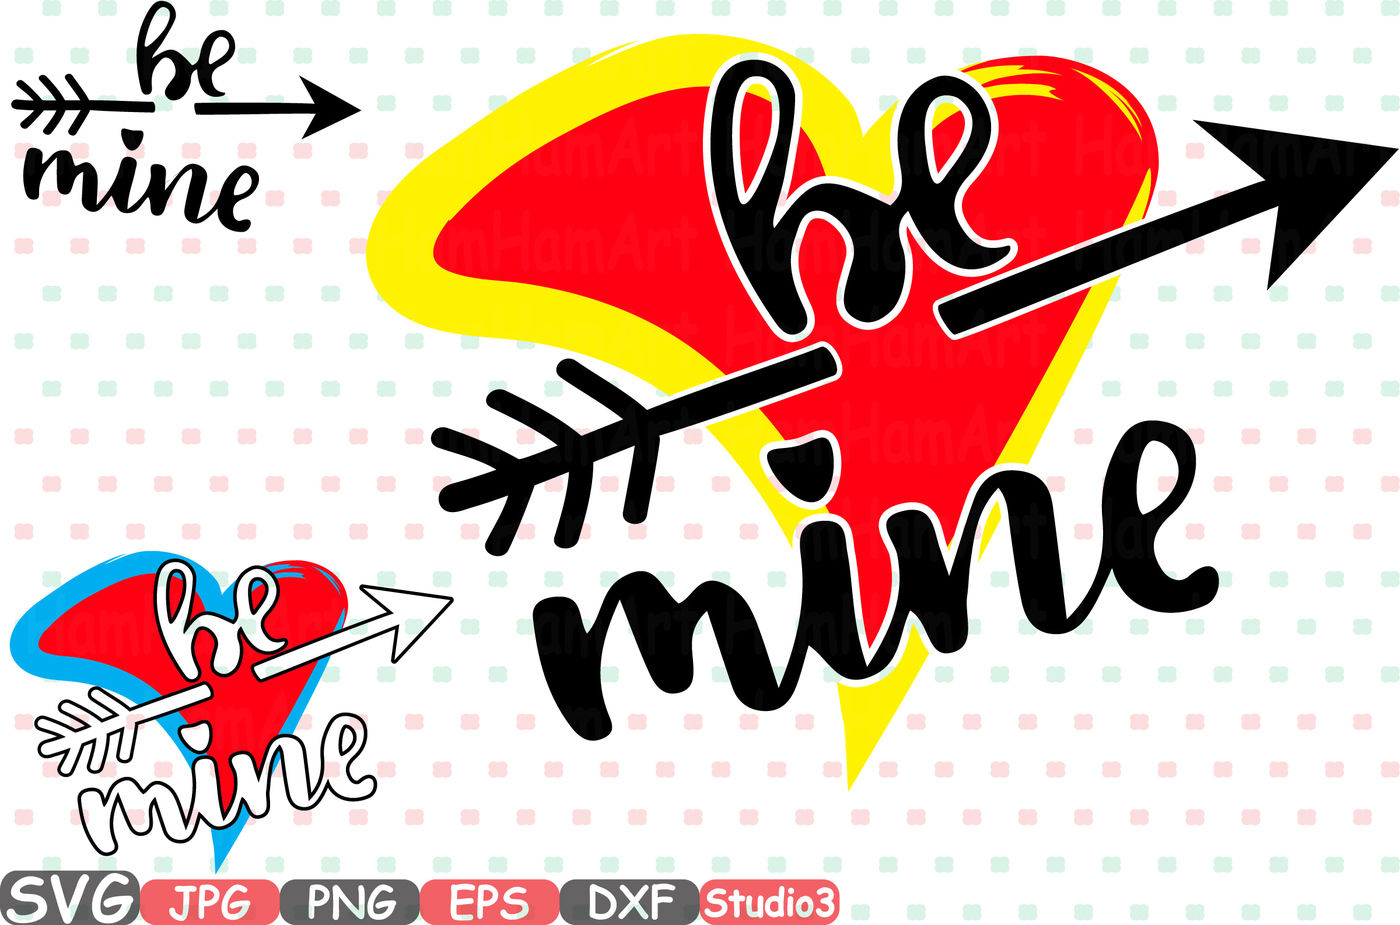 Be Mine Silhouette Svg Cutting Files Valentines Day Arrow 70sv By